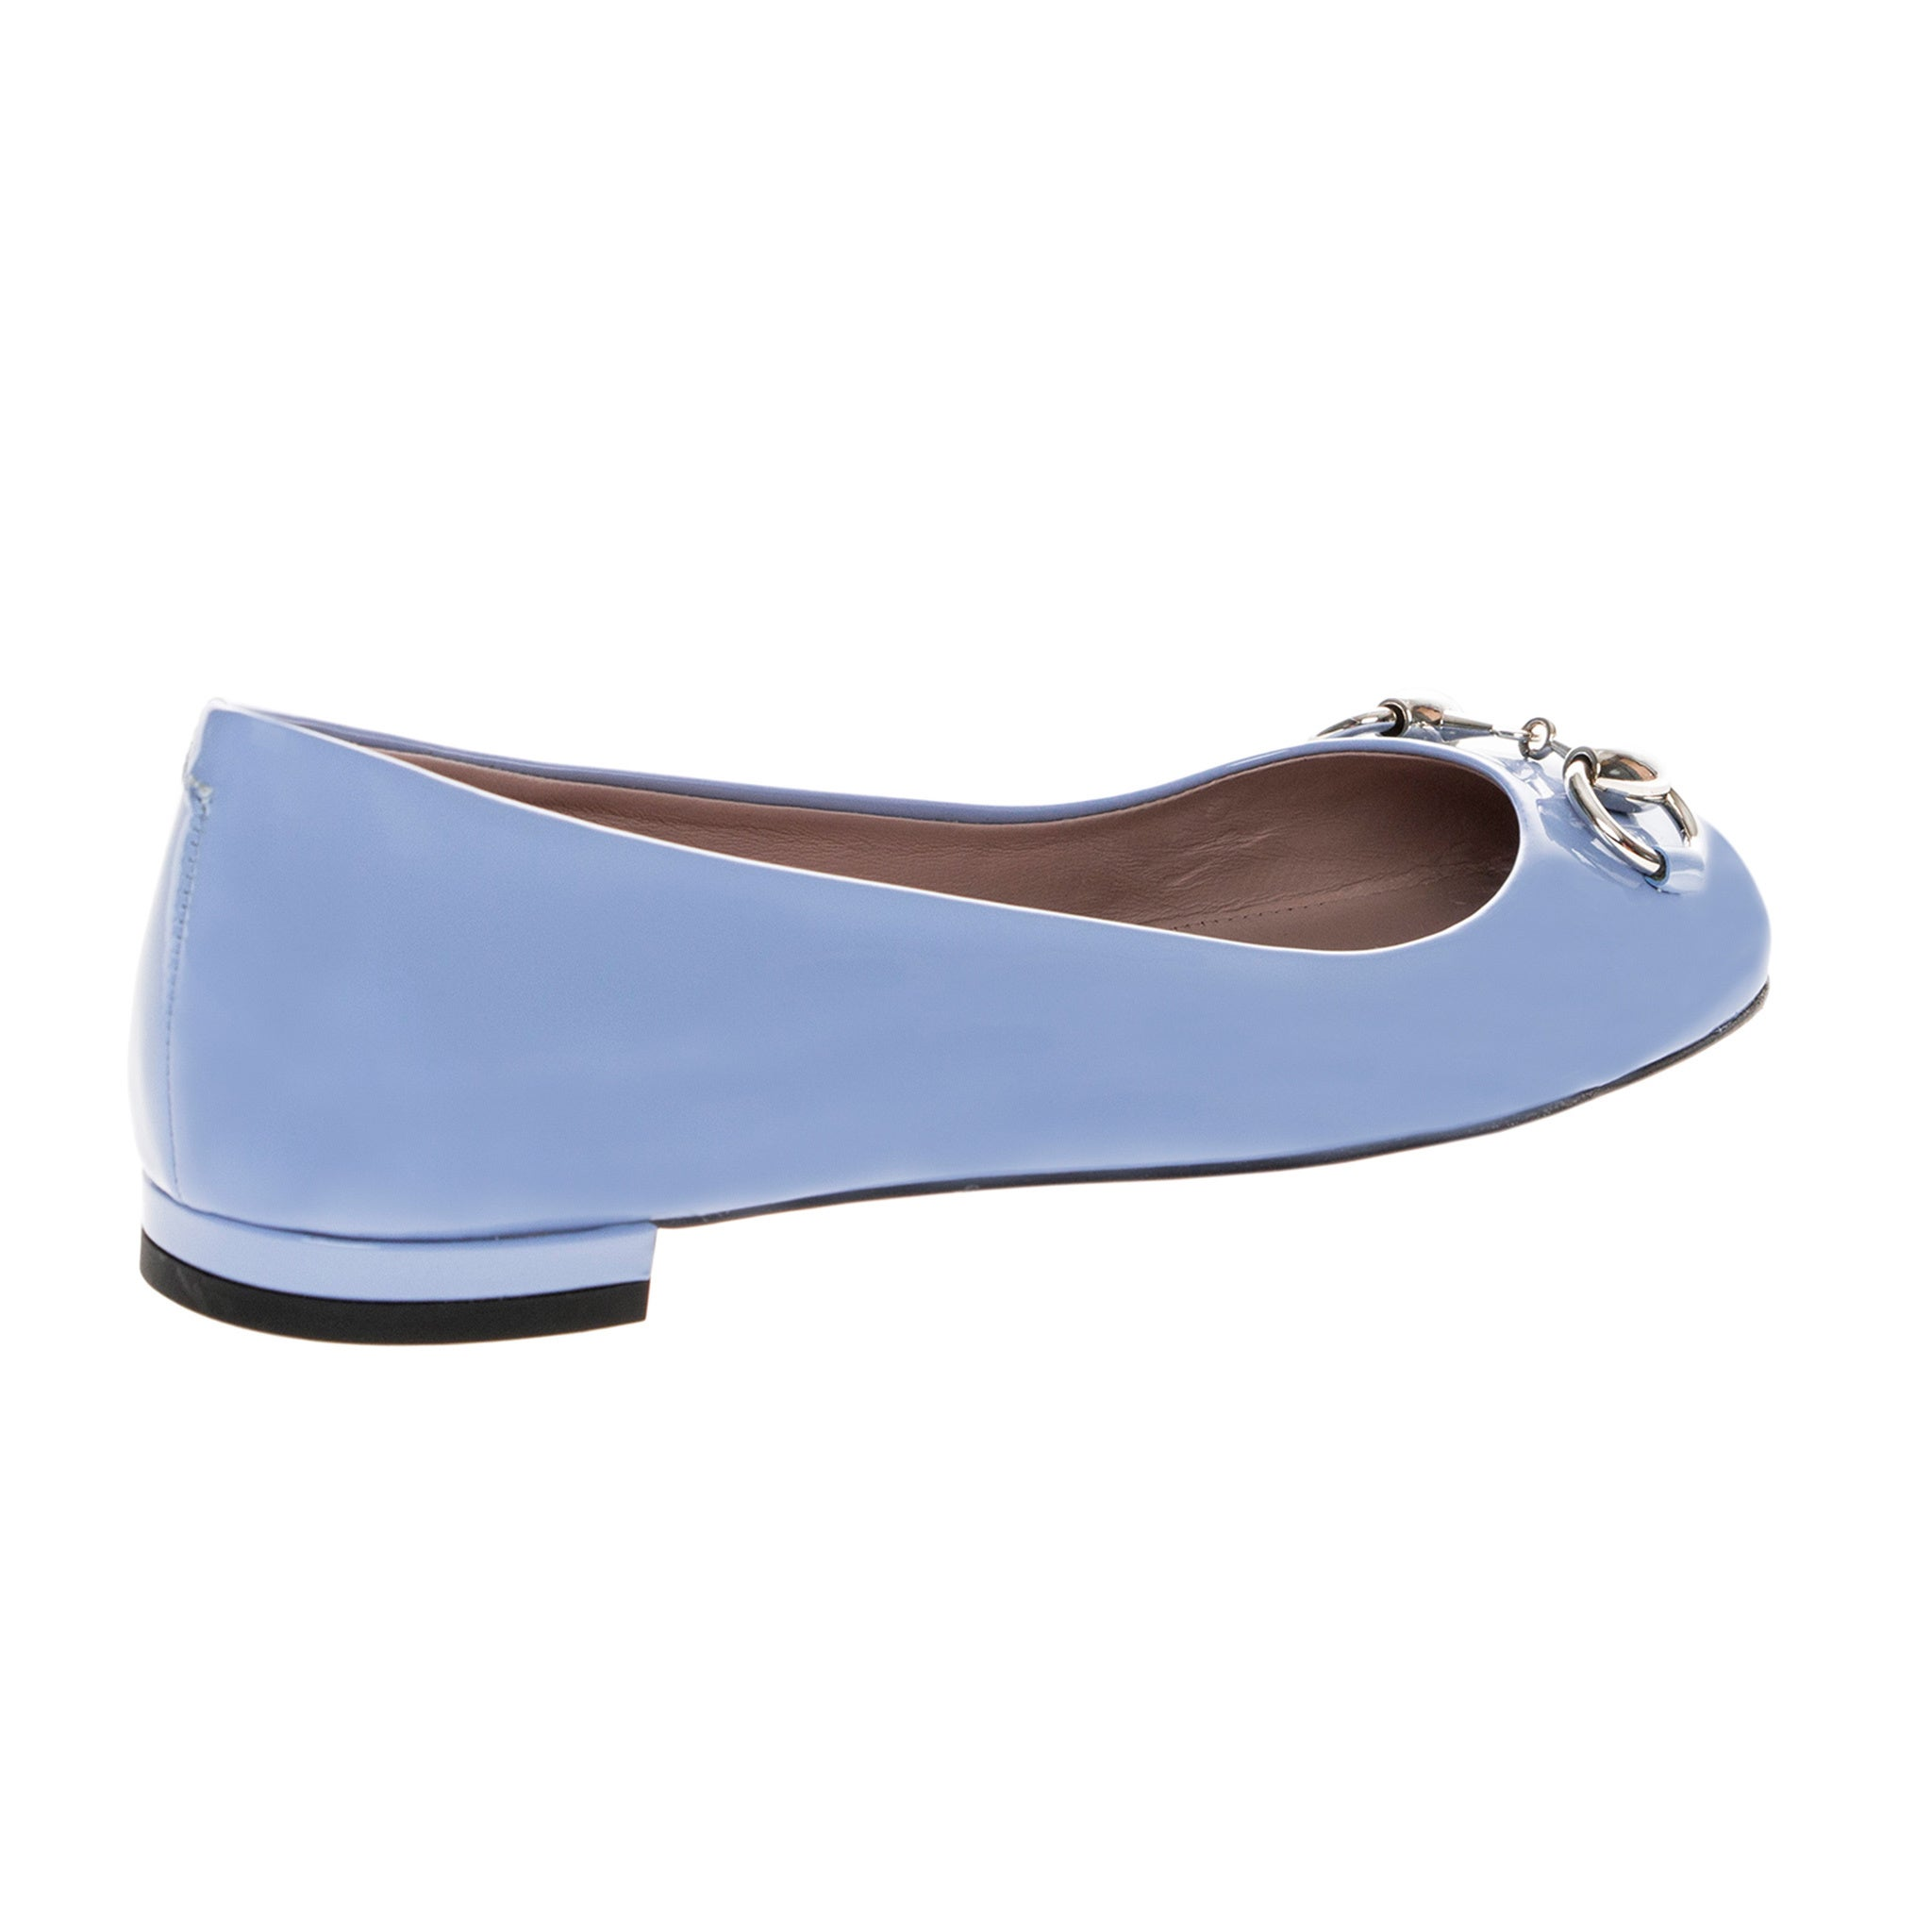 9468db6b9598 Shop Gucci Jolene Patent Leather Flats - Free Shipping Today - Overstock -  10476456